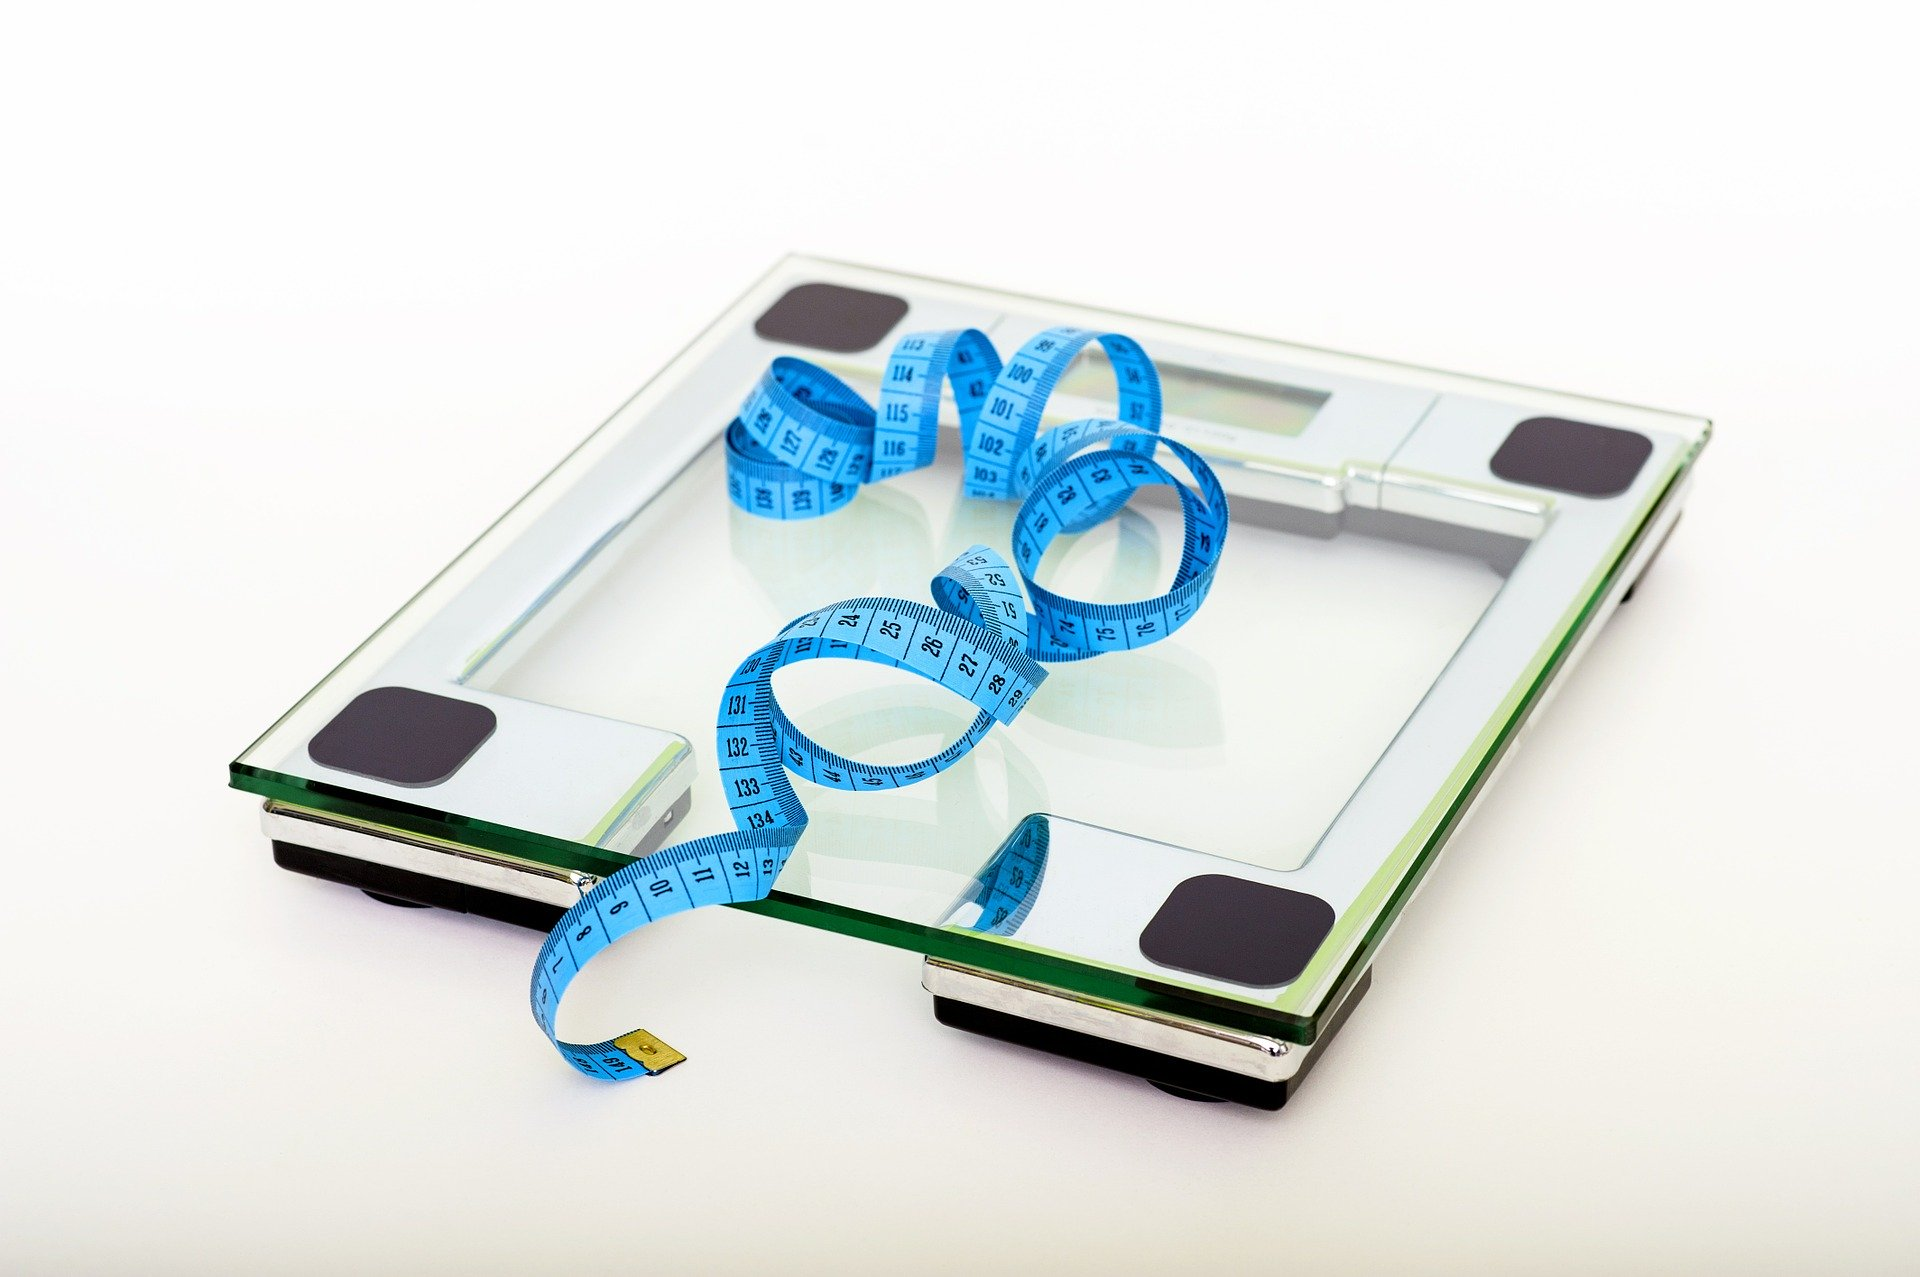 4 ways to understand weight stigma